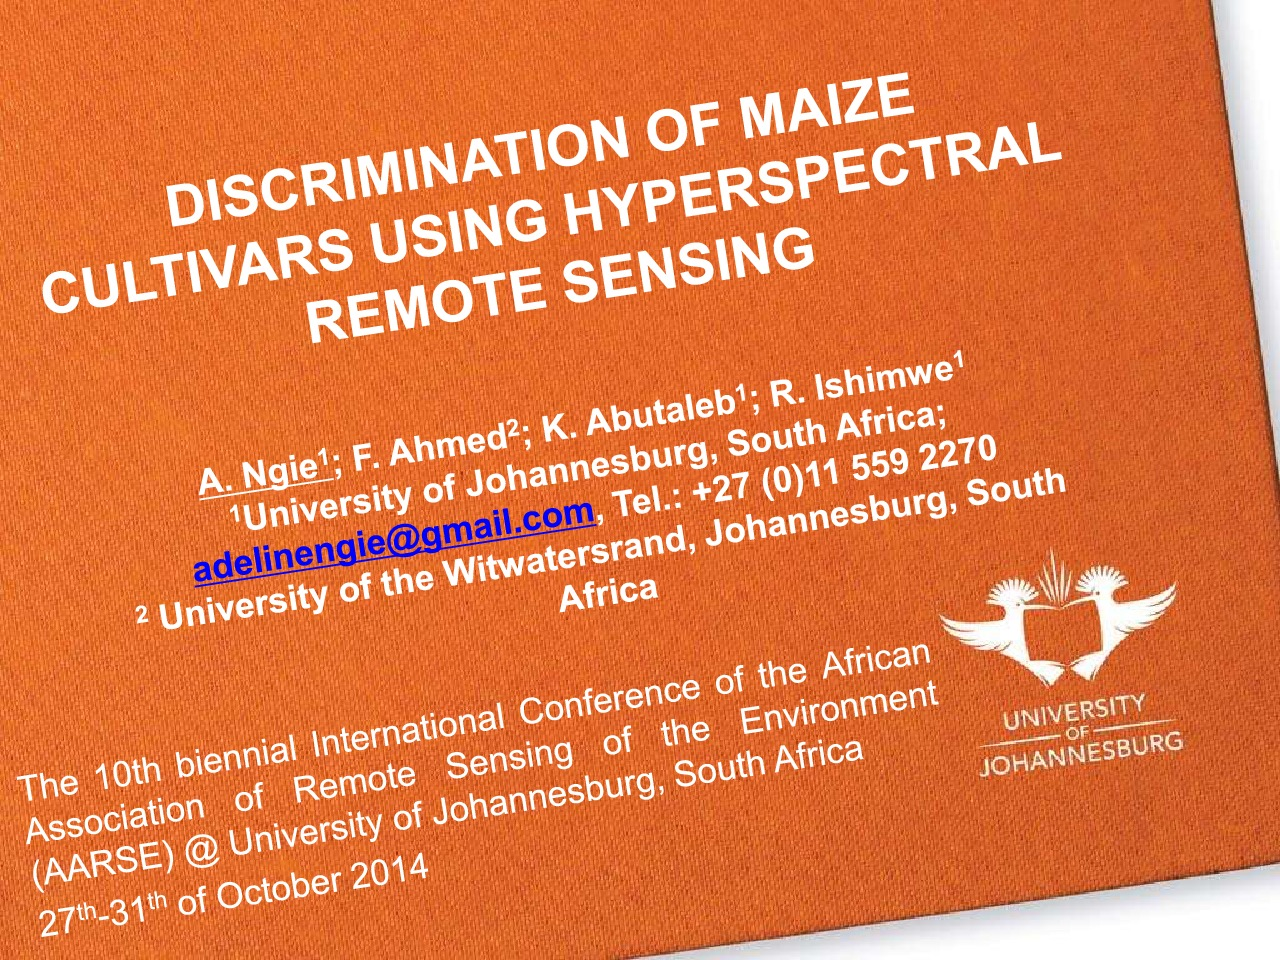 thumbnail of Discrimination_maize_cultivars